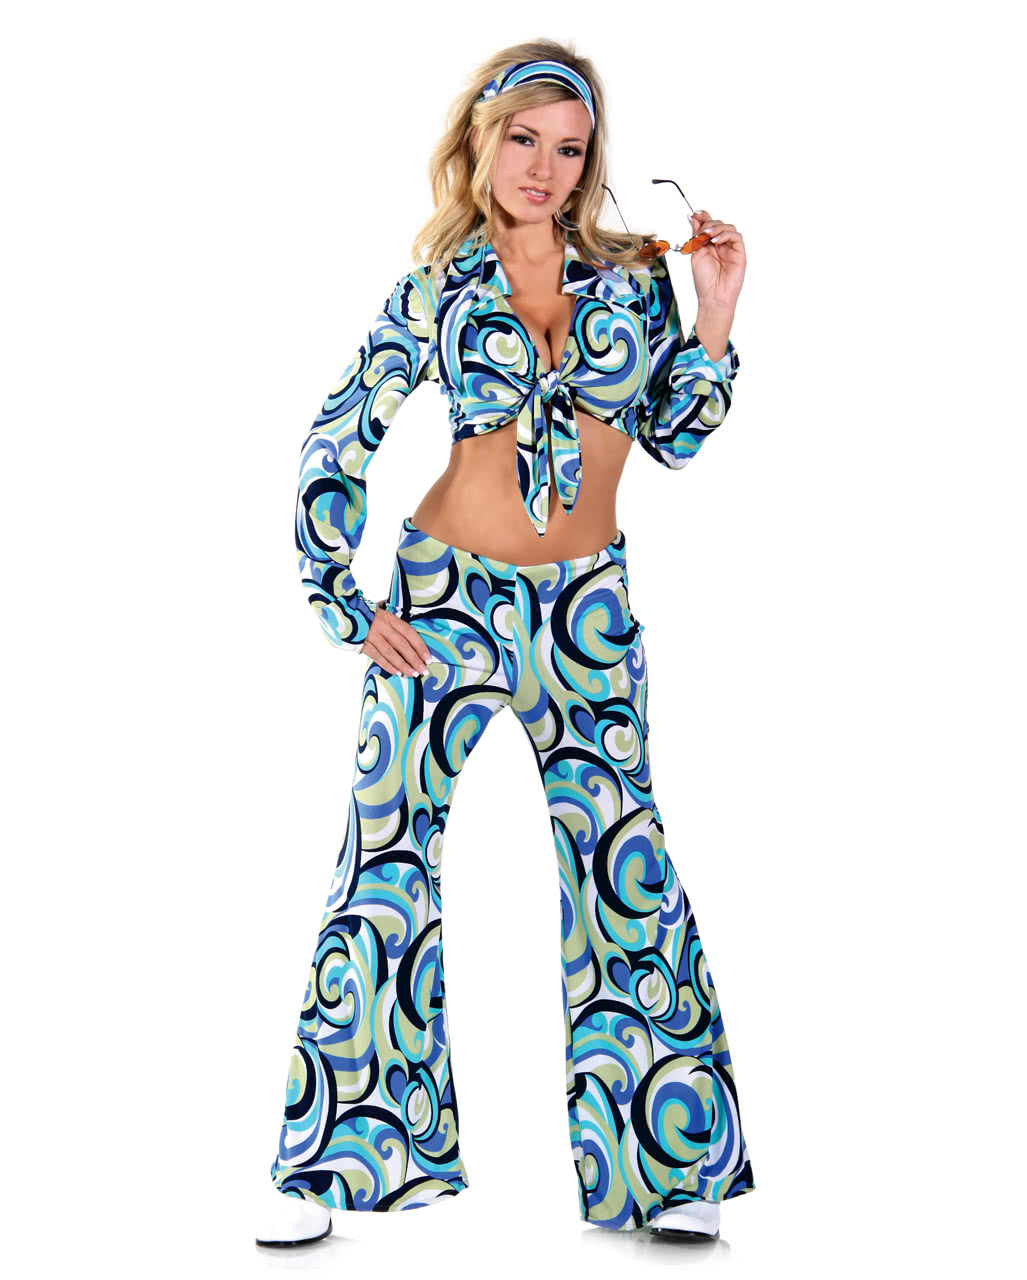 Funky Hippie Costume XLarge -Plus Size Hippie Costumes in Oversized- | horror-shop.com  sc 1 st  Horror-Shop.com & Funky Hippie Costume XLarge -Plus Size Hippie Costumes in Oversized ...